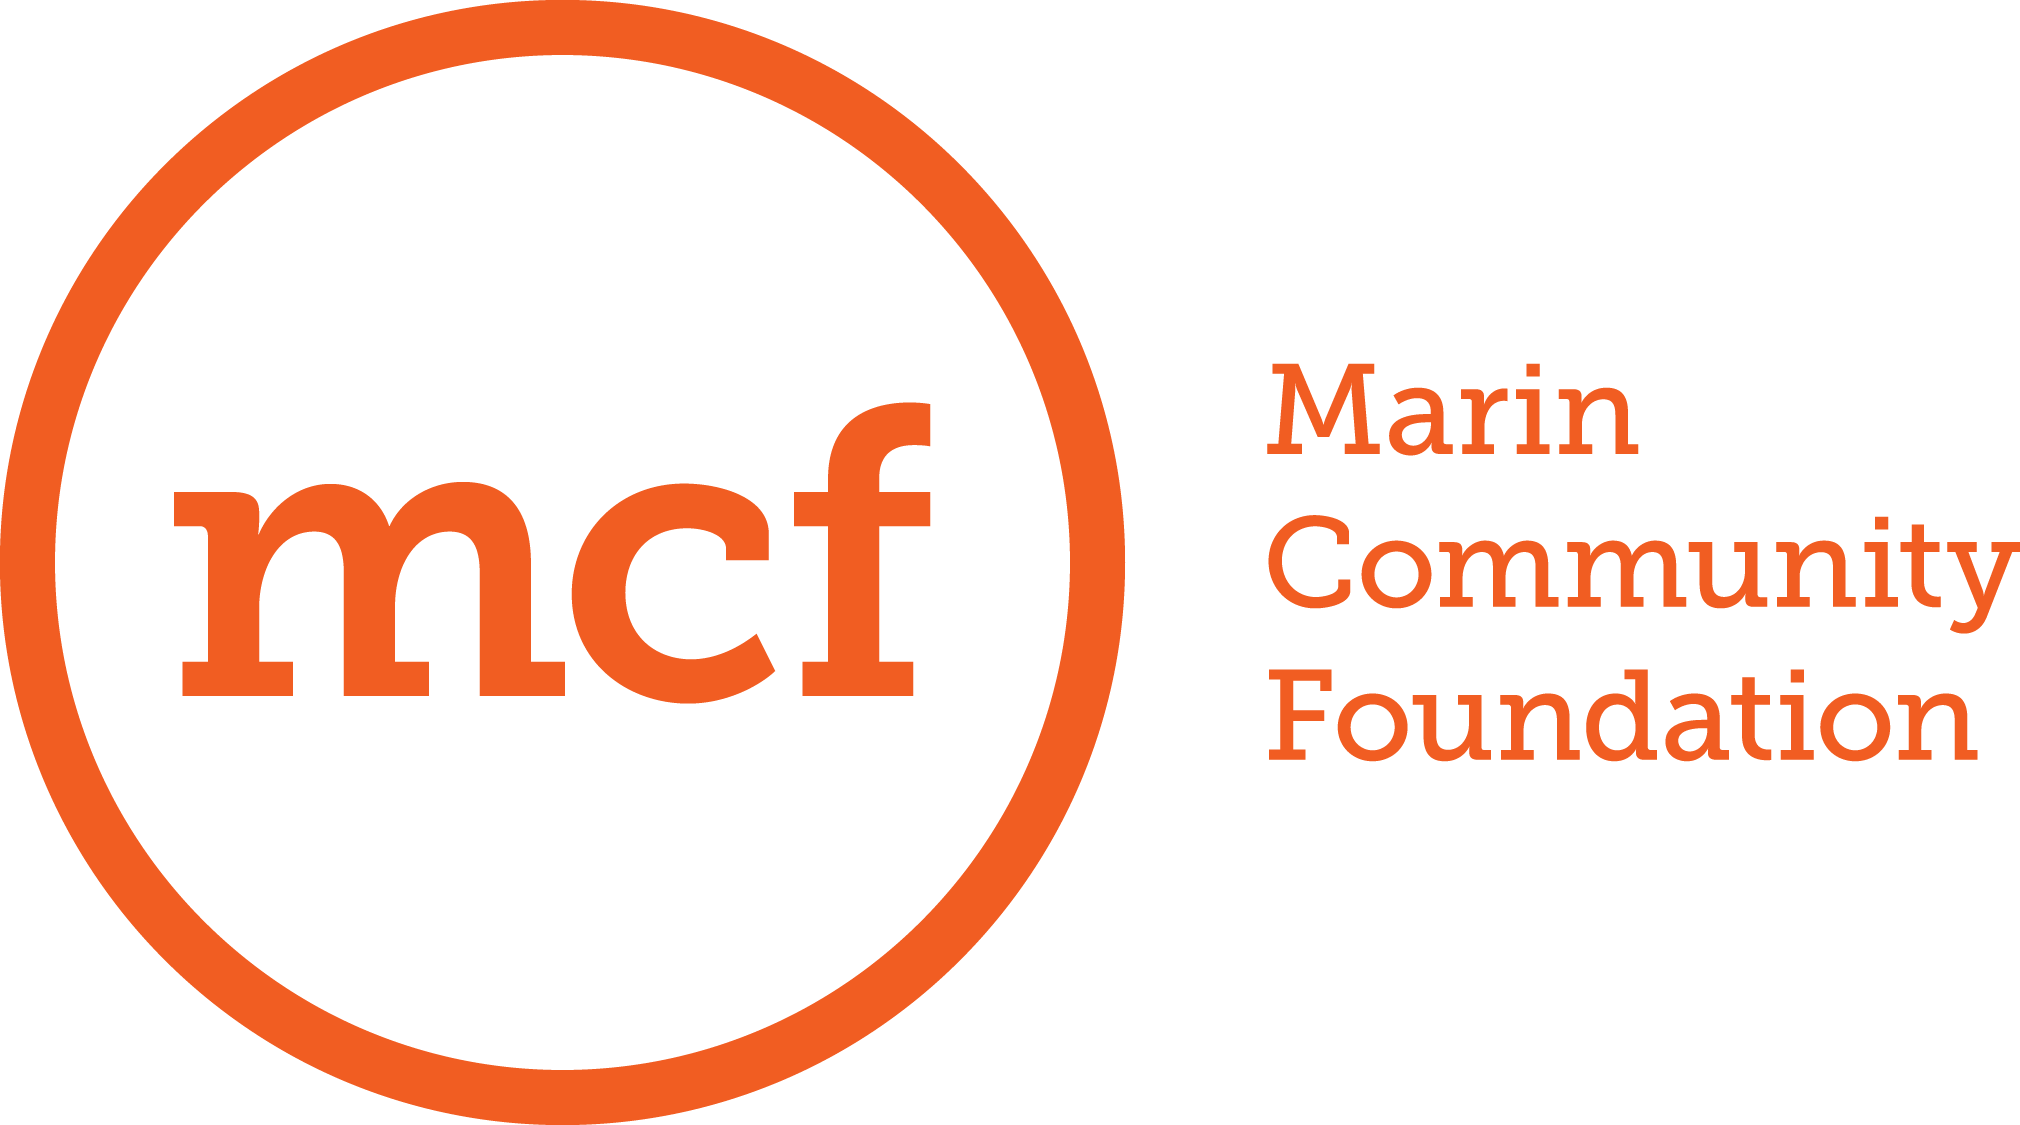 Marin_Community_Foundation.png